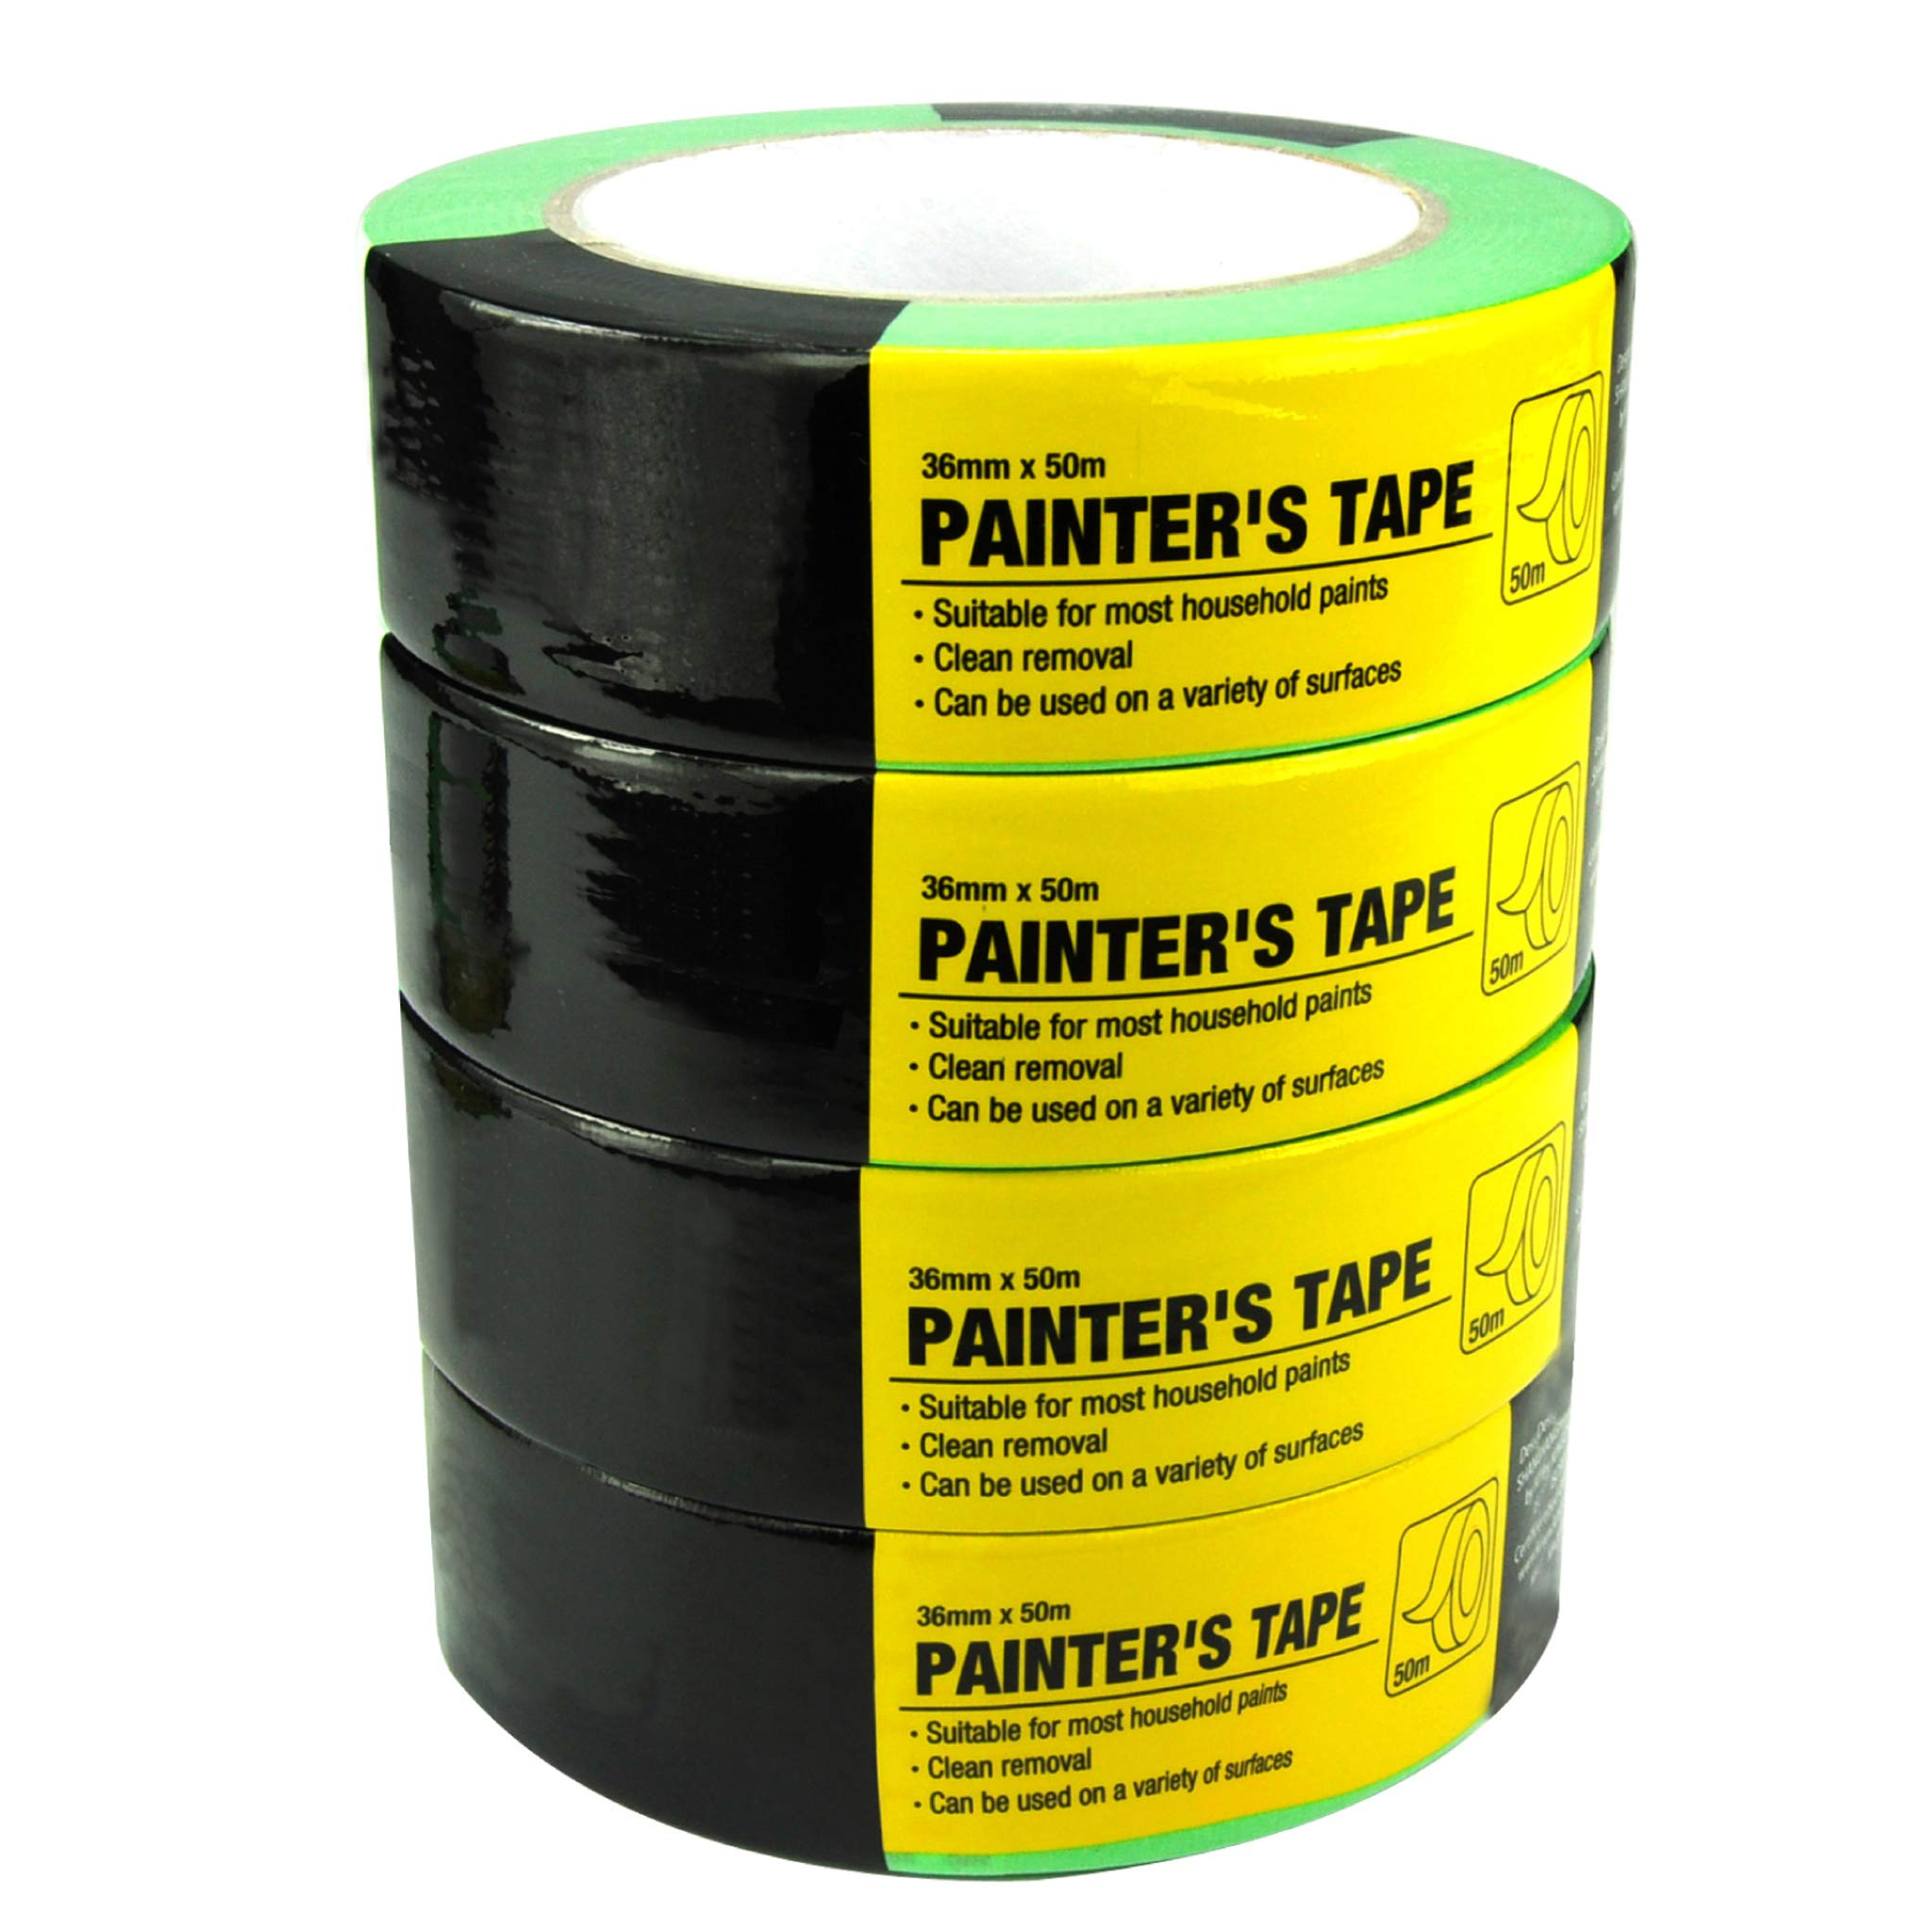 4 Piece Painters Tape,Paint Roller,Masking Tape,Tapes,1.41-Inch by 54.6 Yards(36mm x 50m)